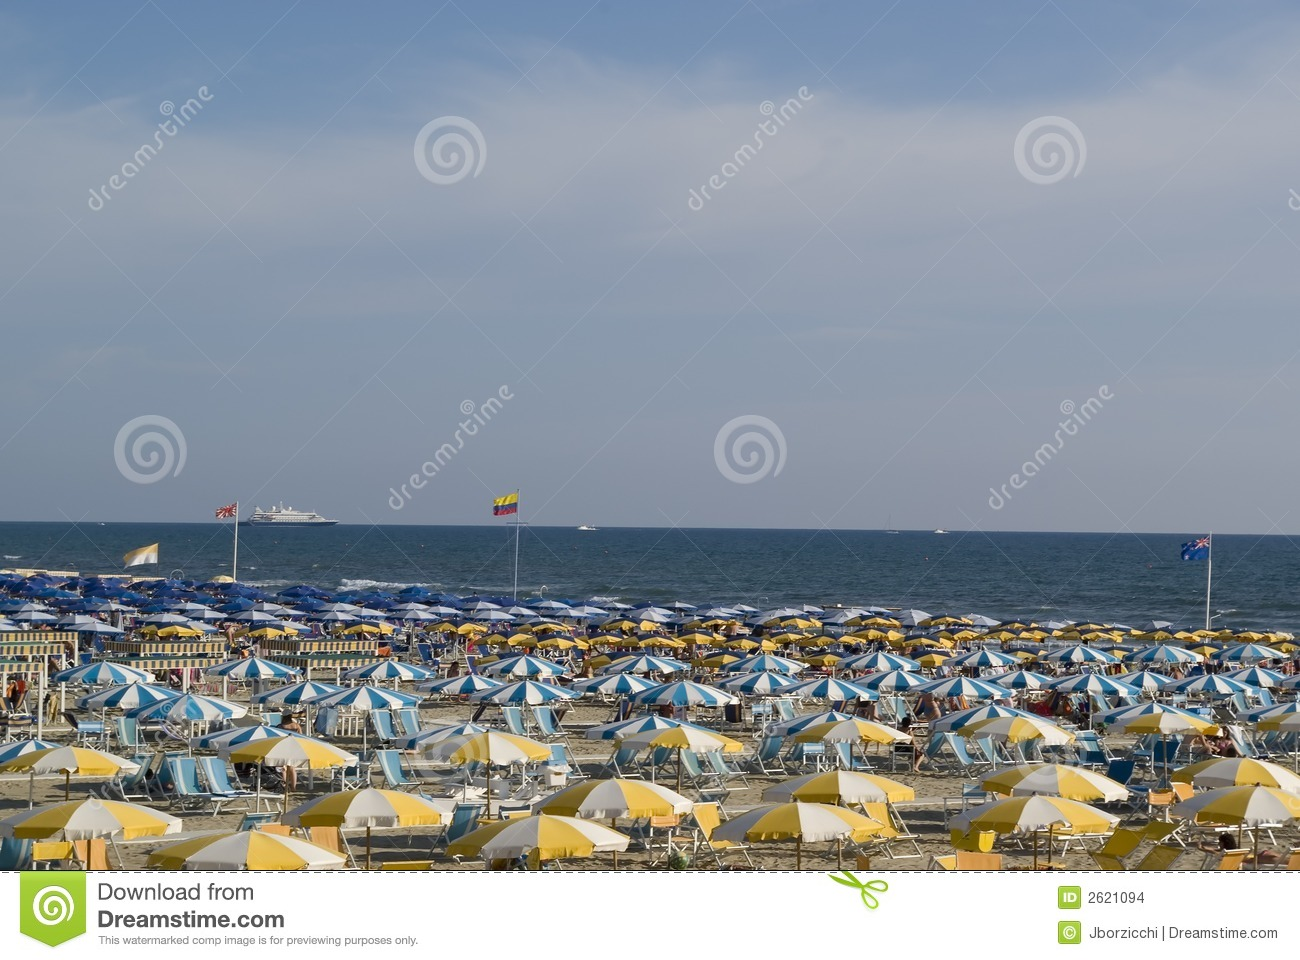 Colored umbrellas stock photo. Image of toscana, sailing ...